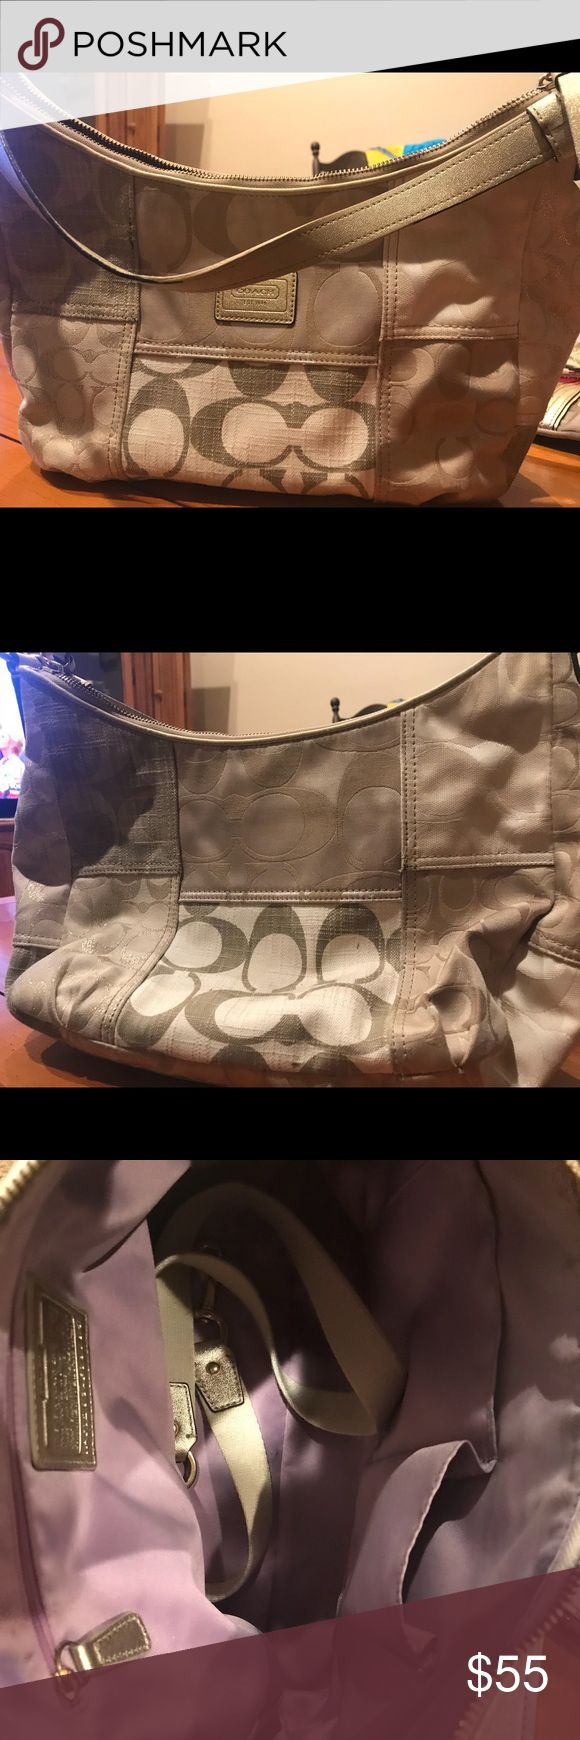 Coach pocketbook Coach Pocketbook. Great Condition and it was rarely used longer strap included Willing to negotiate Coach Bags